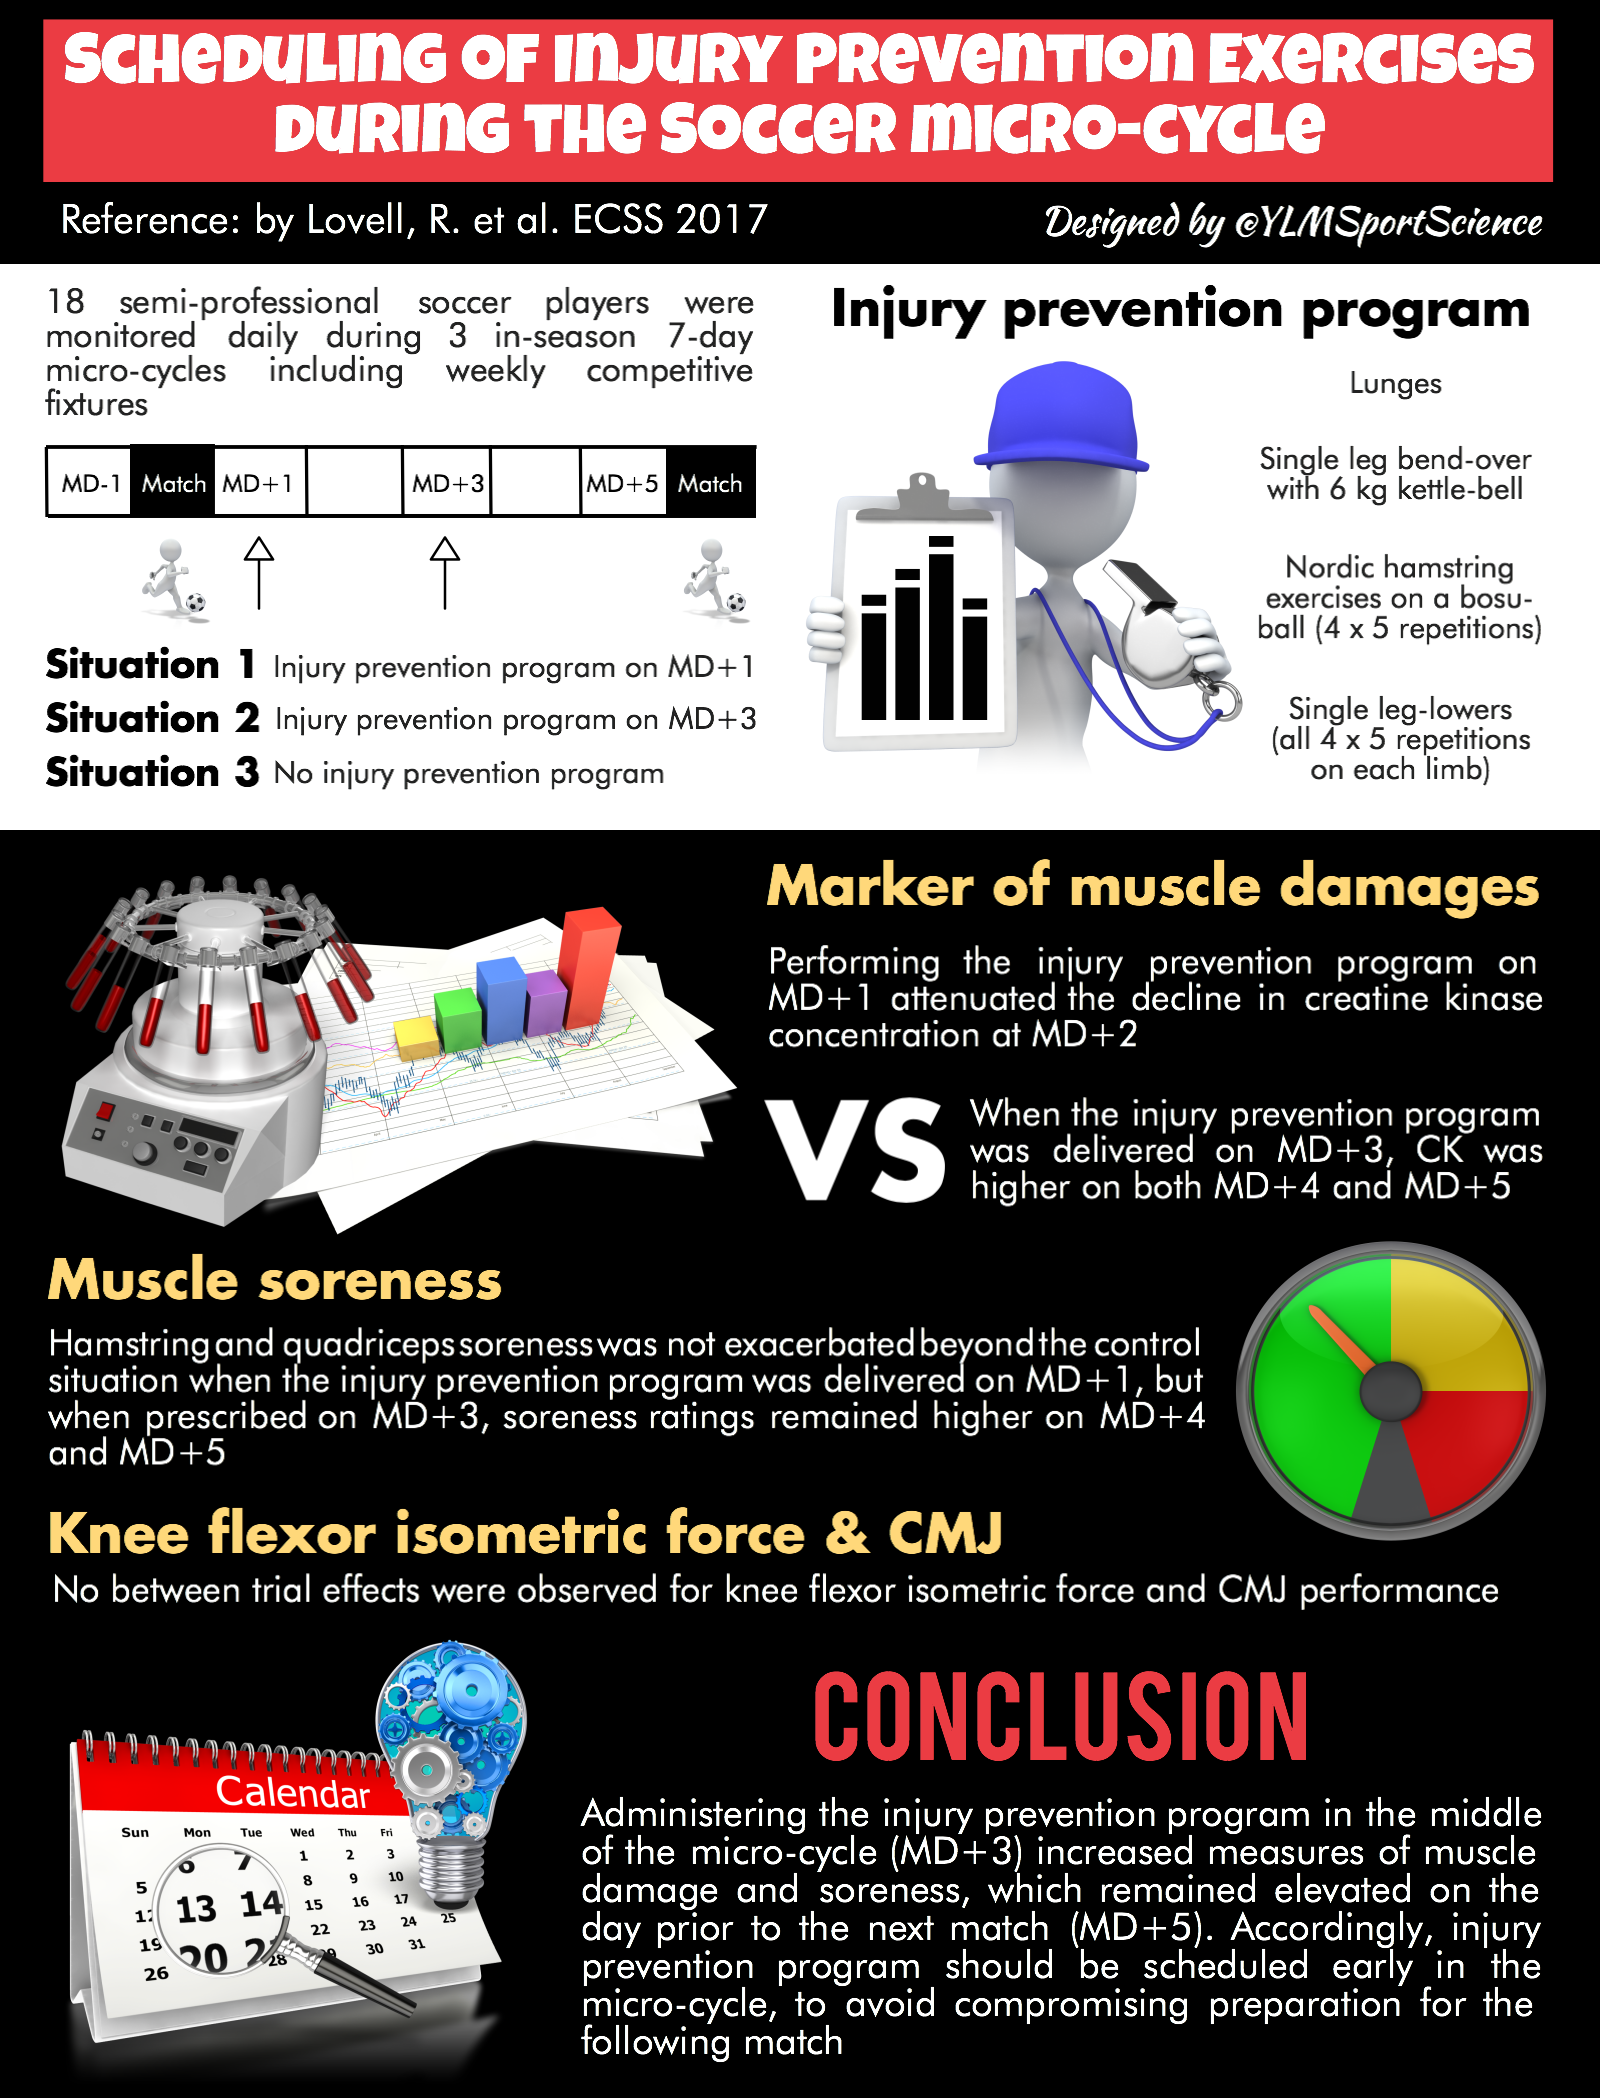 ylmsportscience.com - Scheduling of Injury Prevention Exercises during the Soccer Micro-cycle